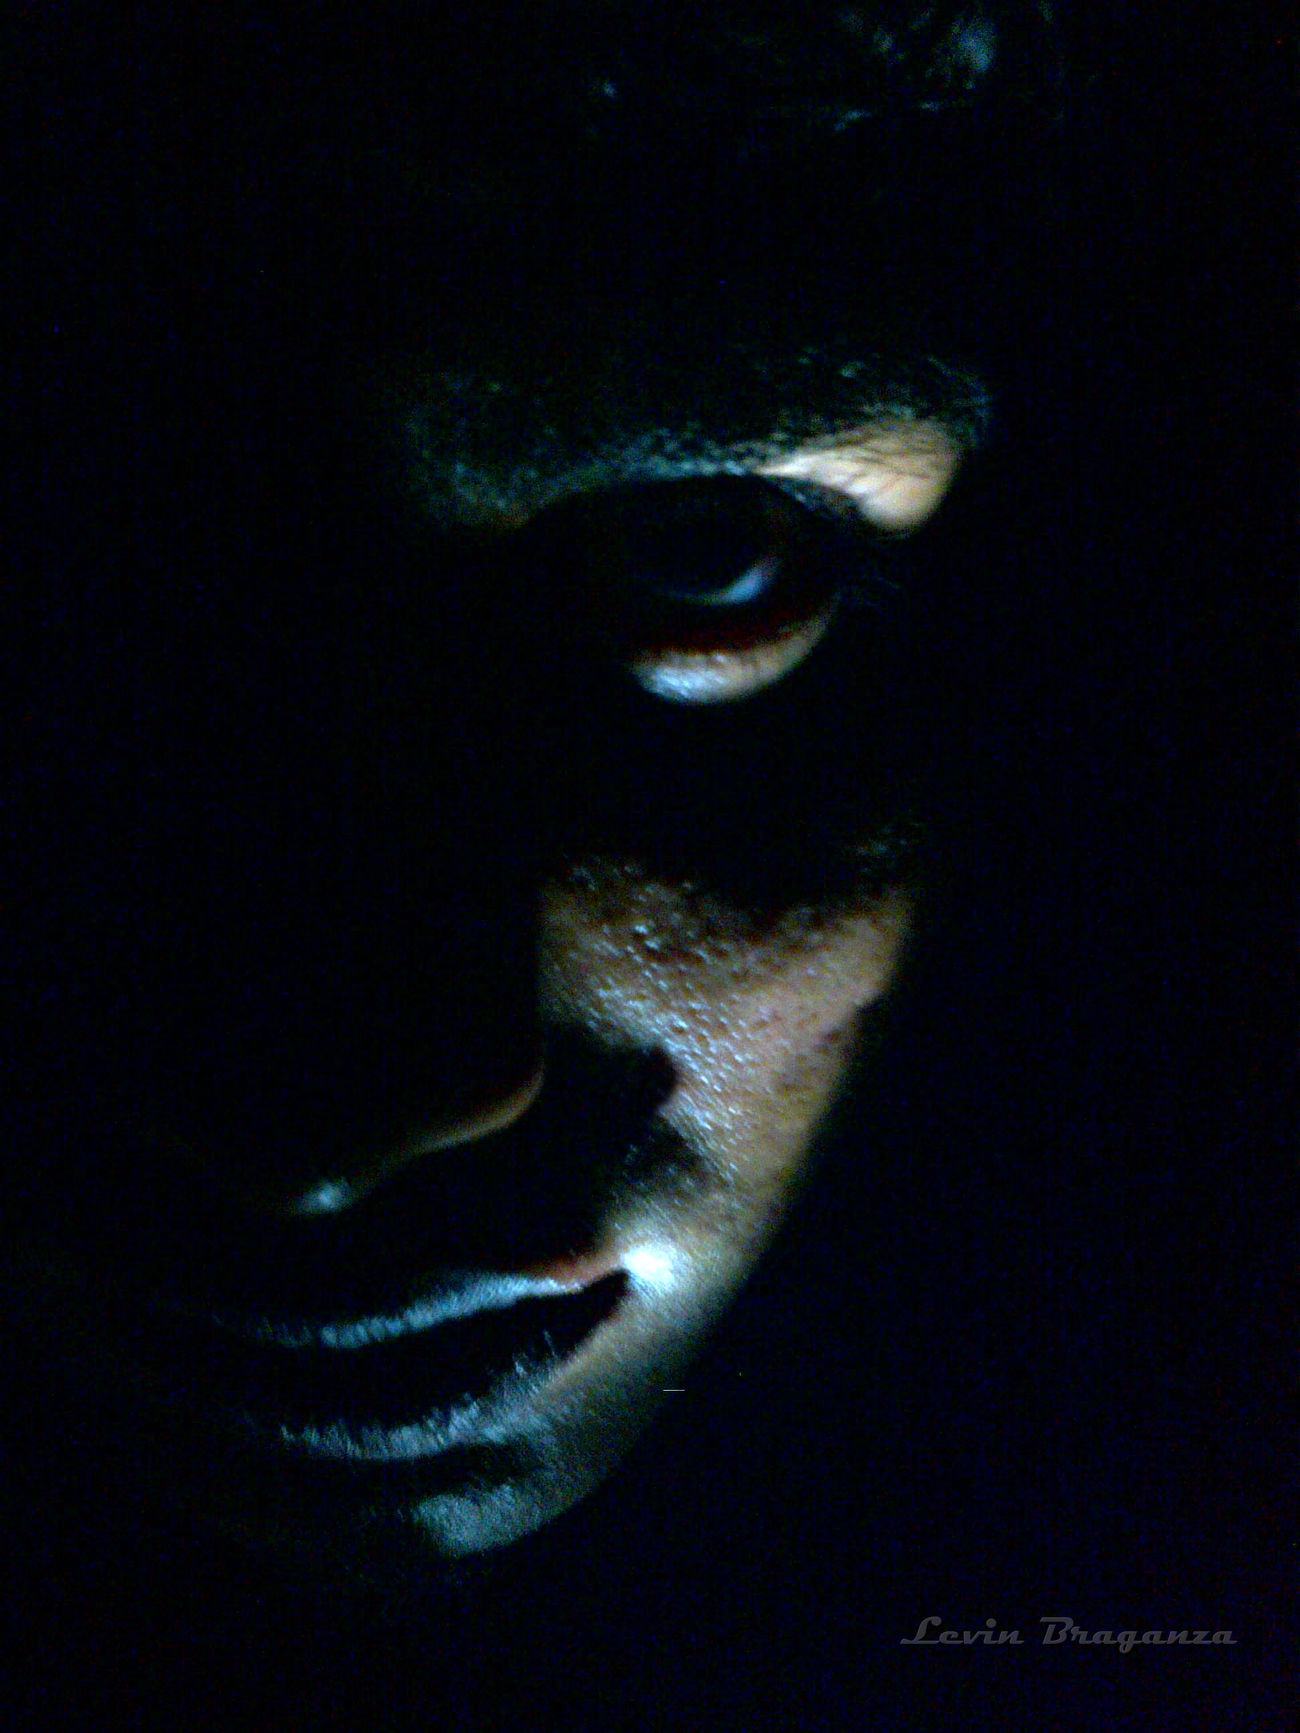 This is a shot wherein I tried to portray the negativity in me via the self portrait and different lighting approach